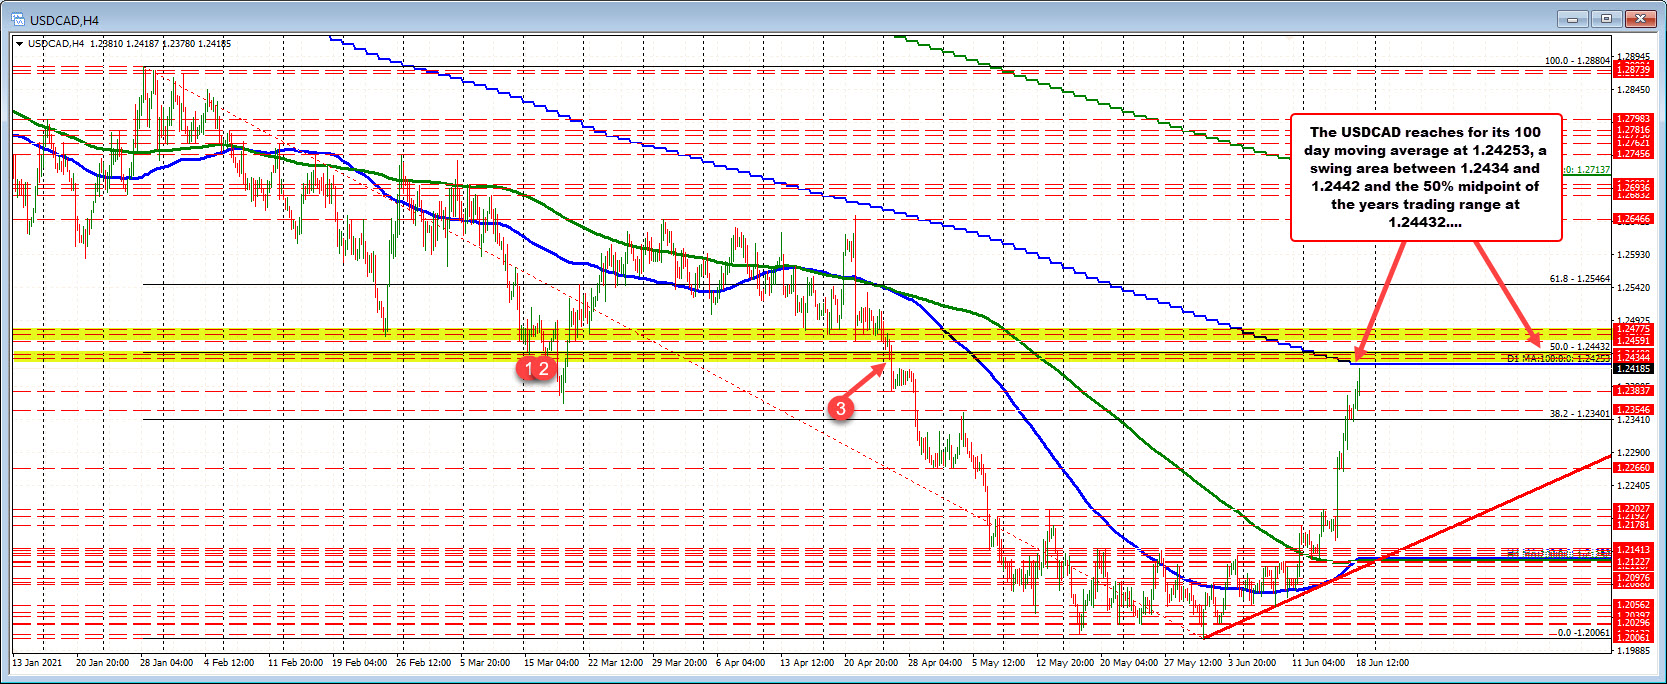 100 day moving average of 1.2425.A swing area at 1.2434 to1.2442. 50% retracement 1.24432.